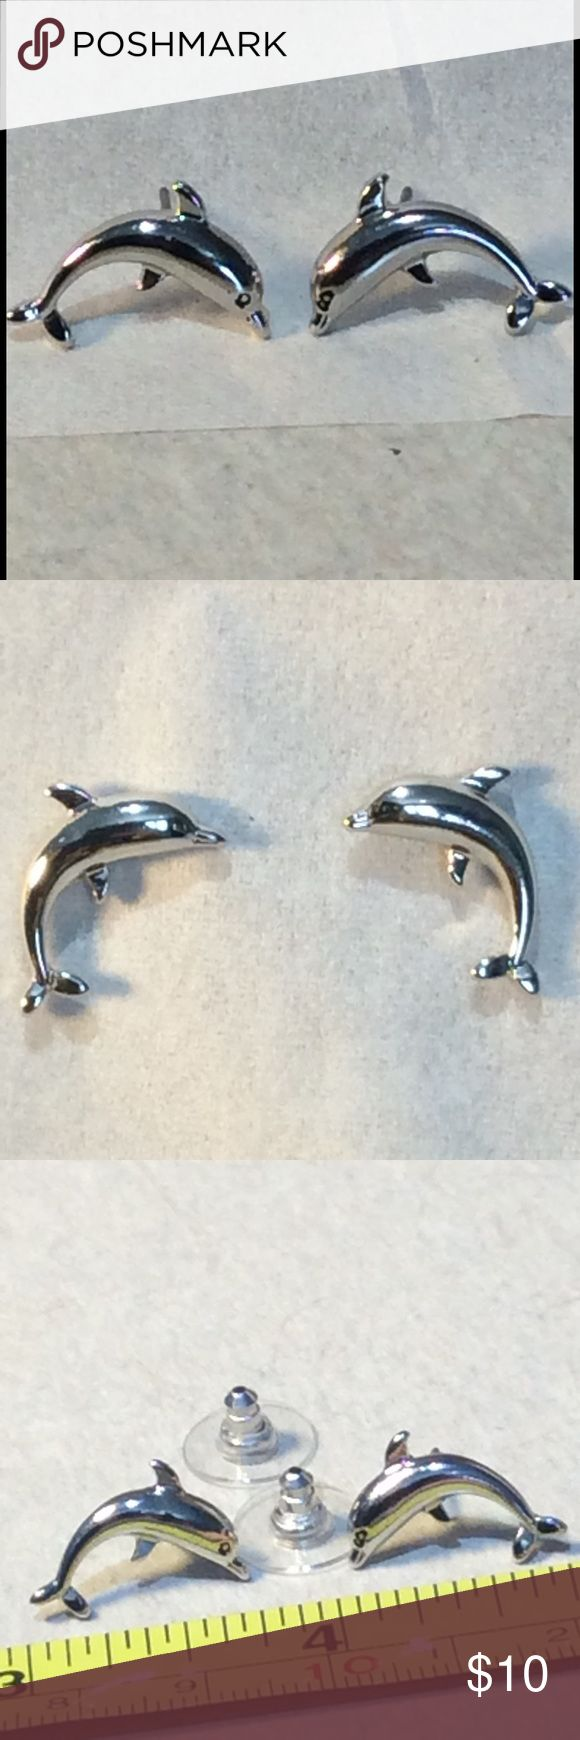 Silver Dolphin Studs Silver plated dolphin Stud earrings brand new Jewelry Earrings